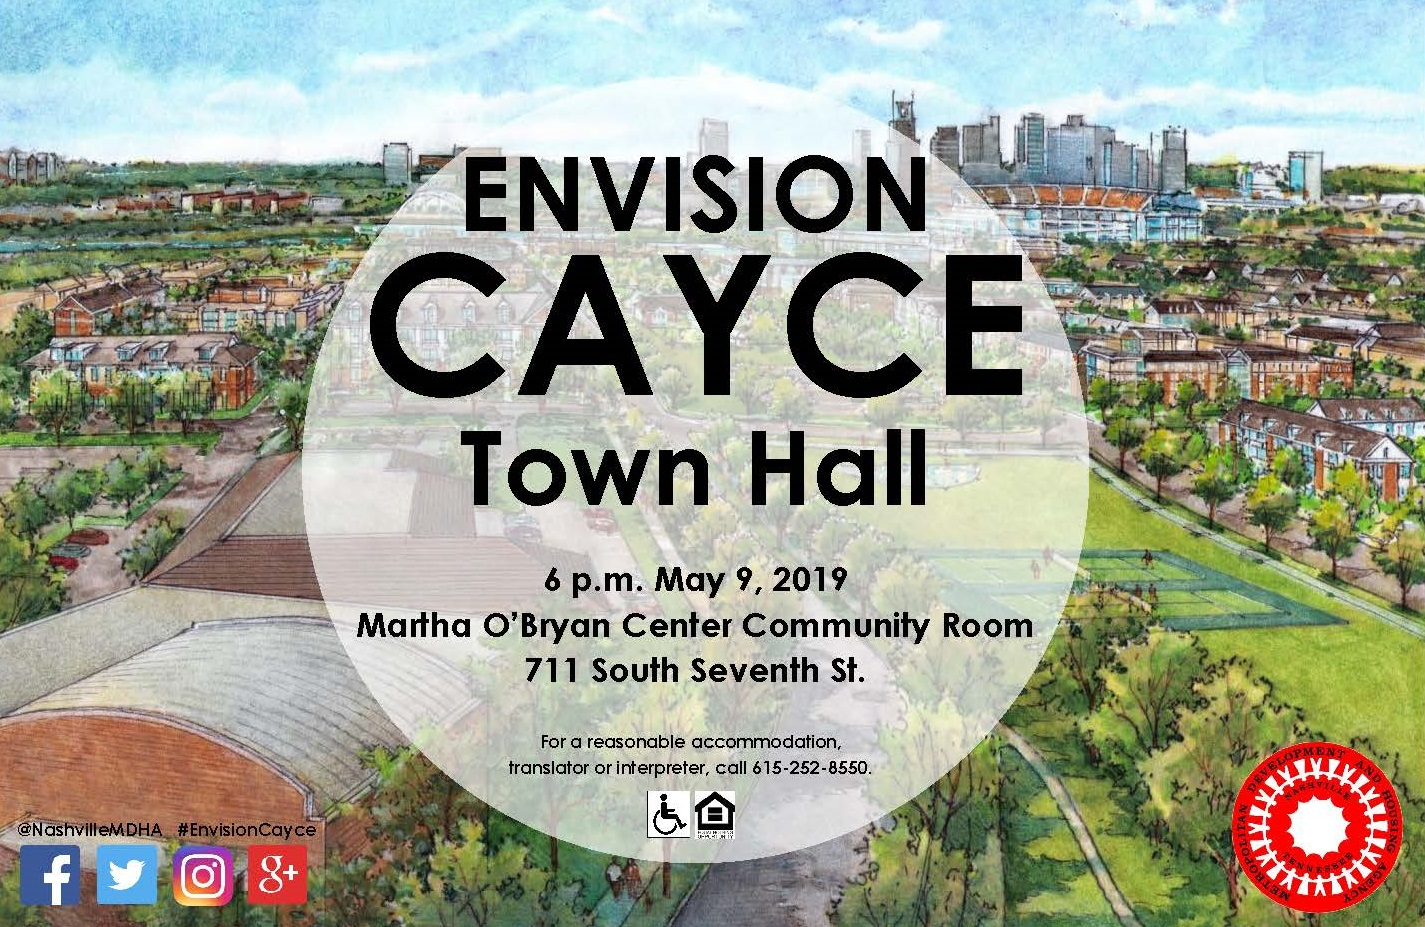 envision-cayce-townhall-05092019-c